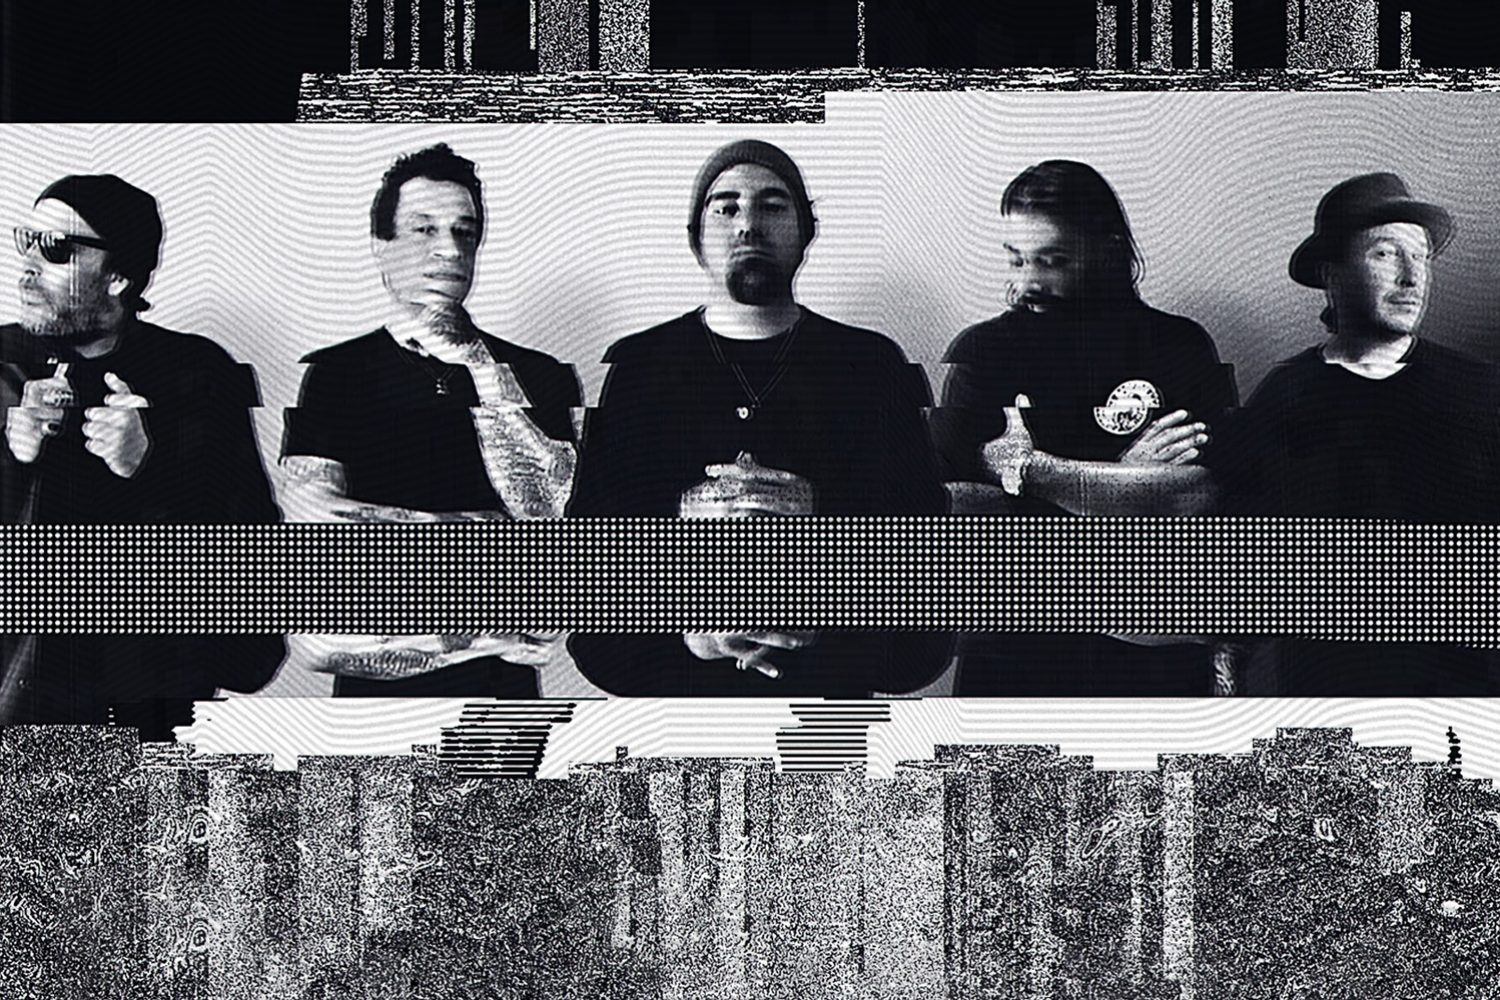 Introducing the new issue of Upset, featuring Deftones!